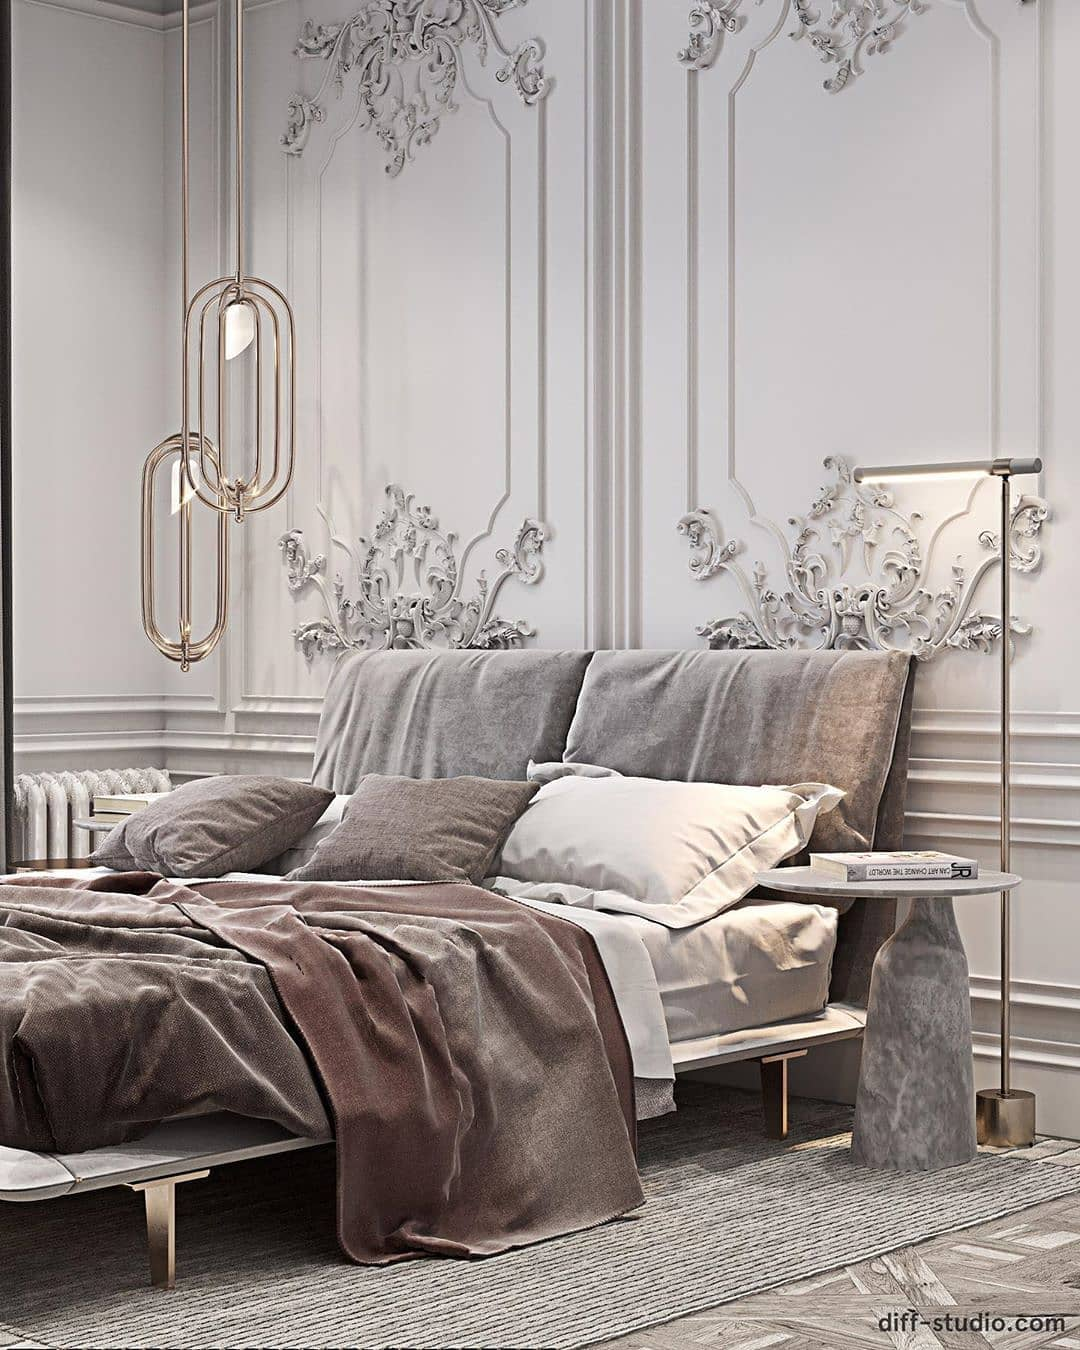 Spark The Inspiration For Your New Interiors spark Spark The Inspiration ForYour New Interiors DL 4